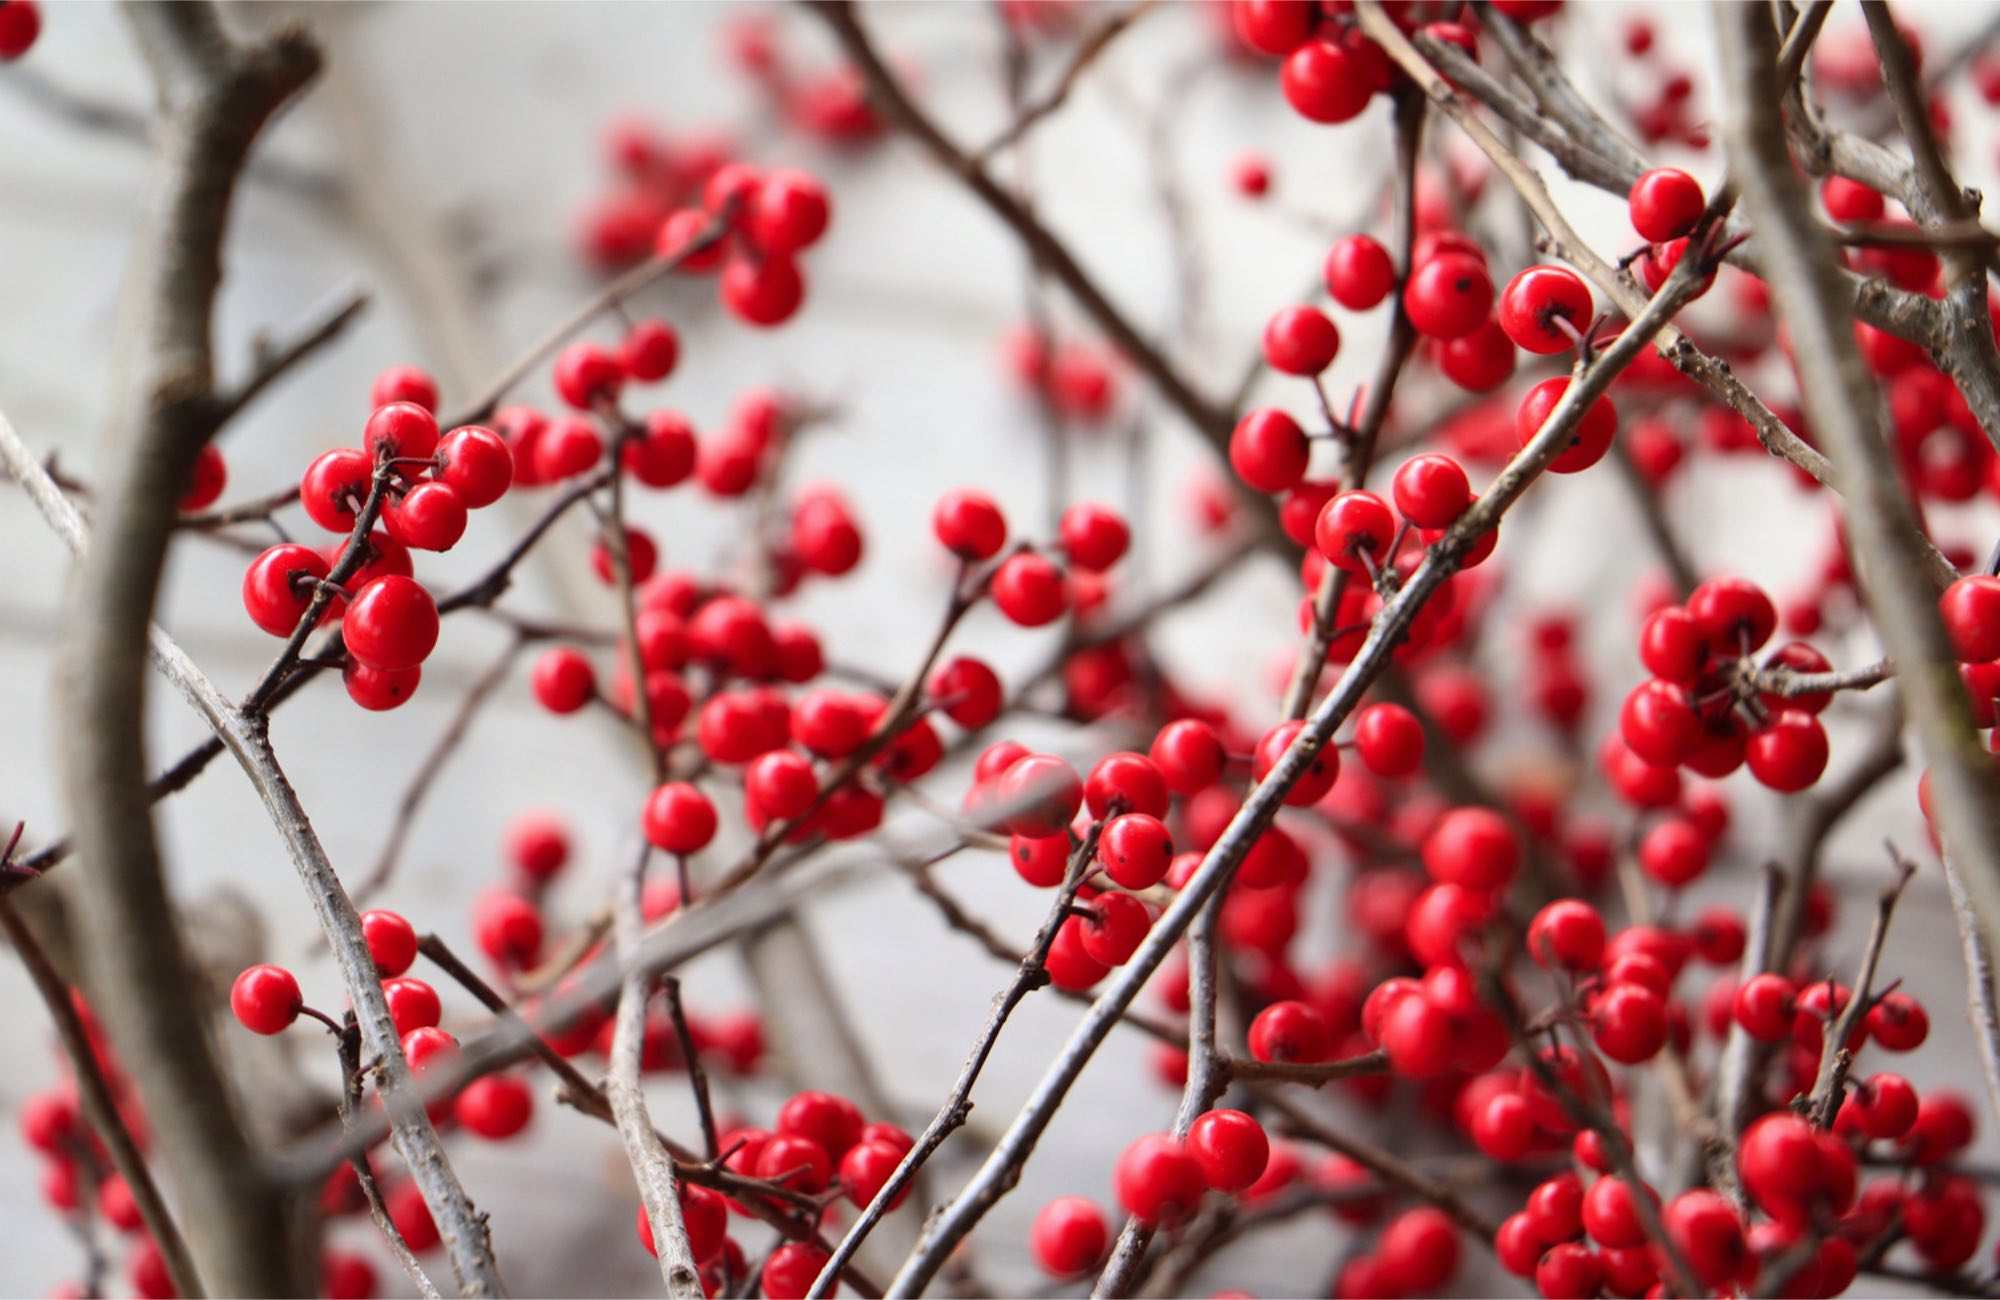 bright red berries on bare branches